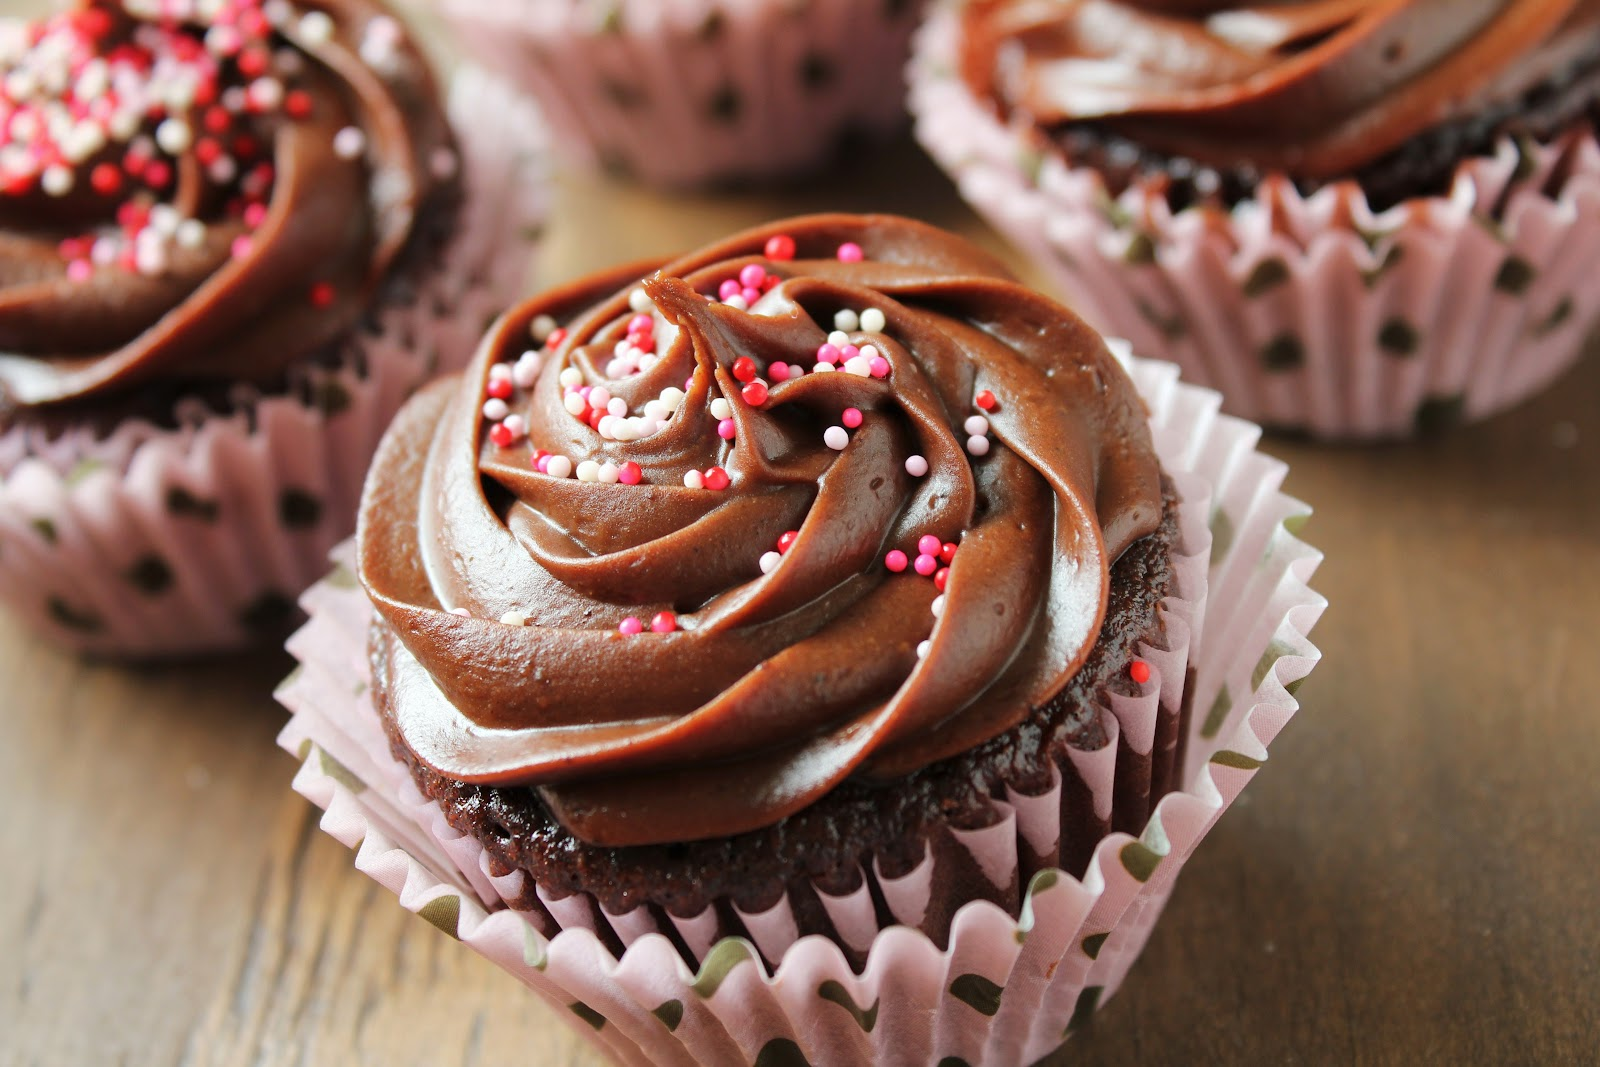 Gluten-Free Chocolate Cupcakes With Fudge Frosting